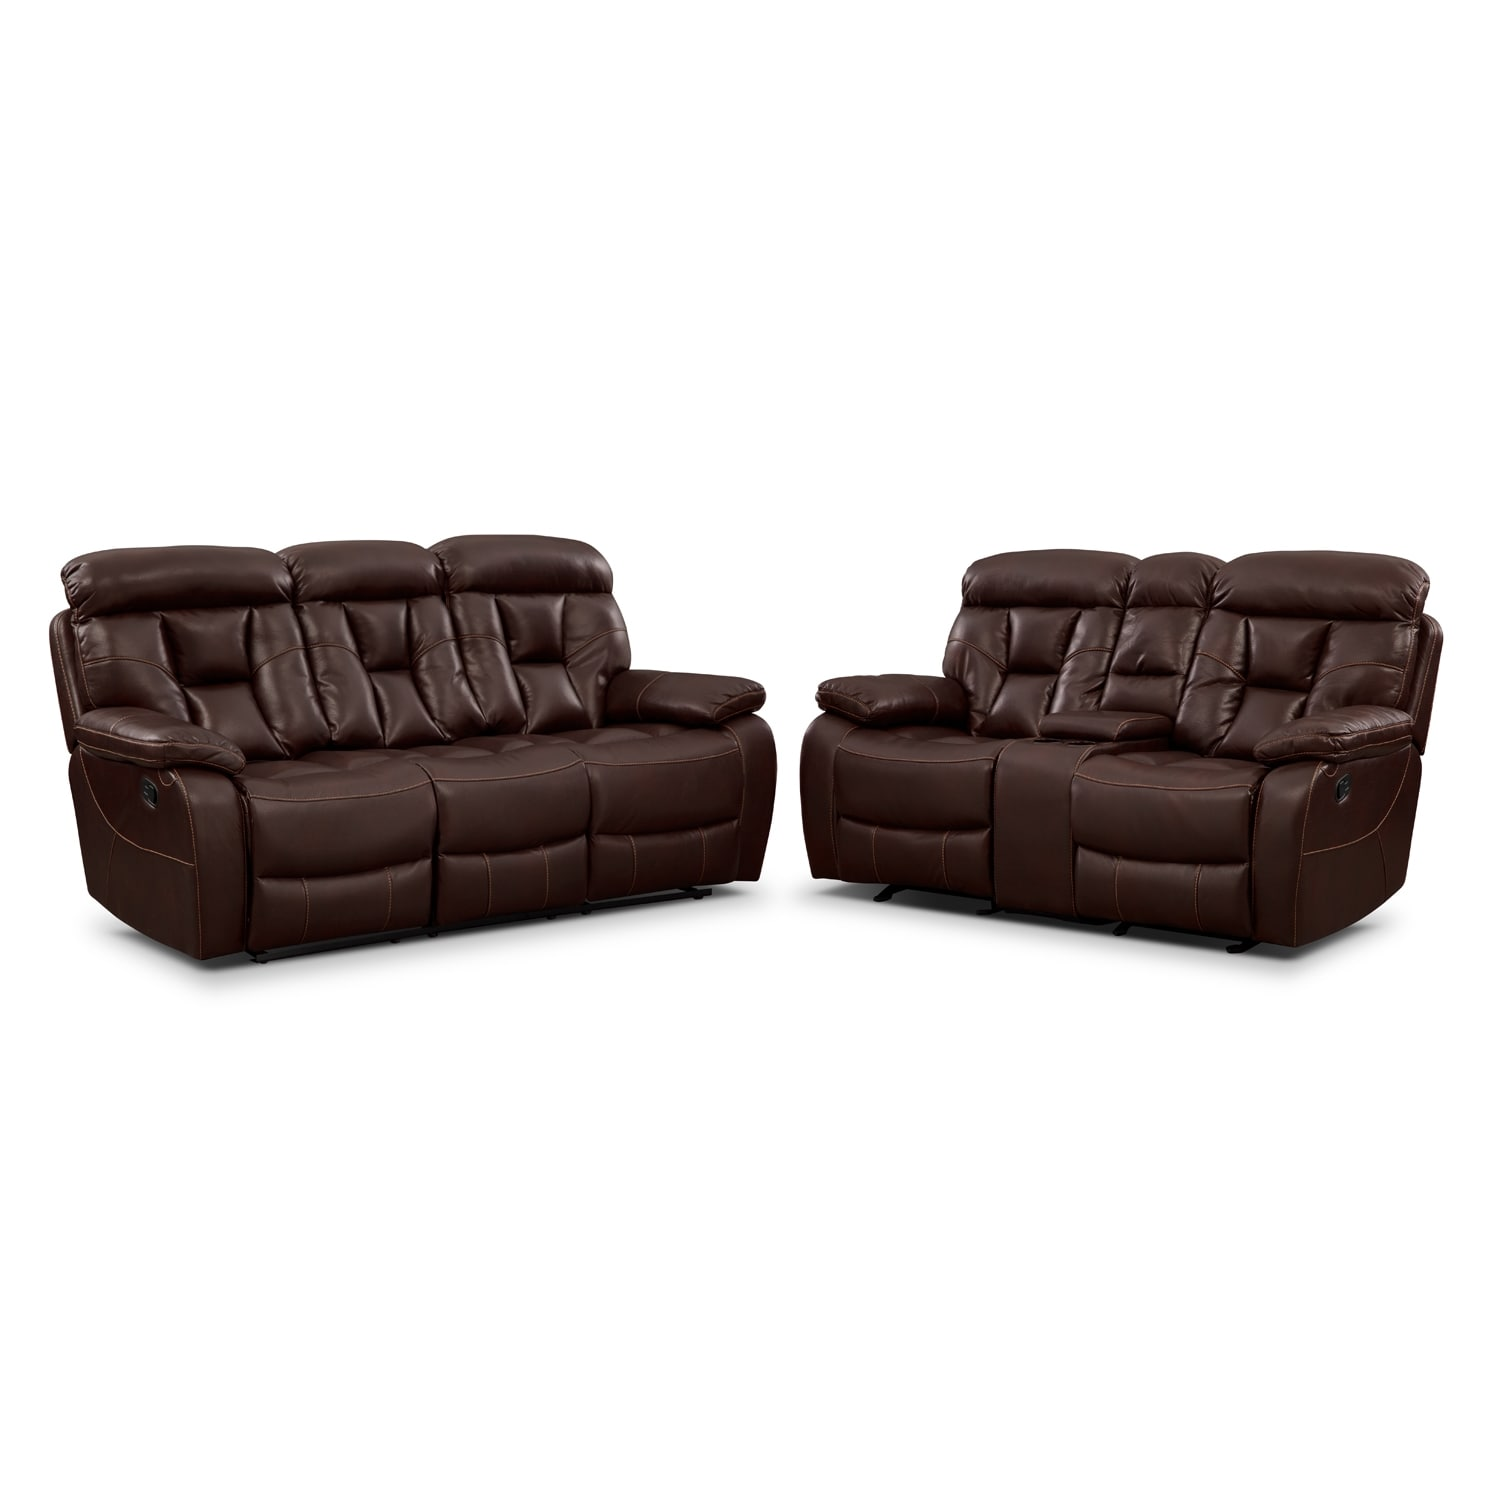 Living Room Furniture - Dakota Reclining Sofa and Gliding Loveseat Set - Java